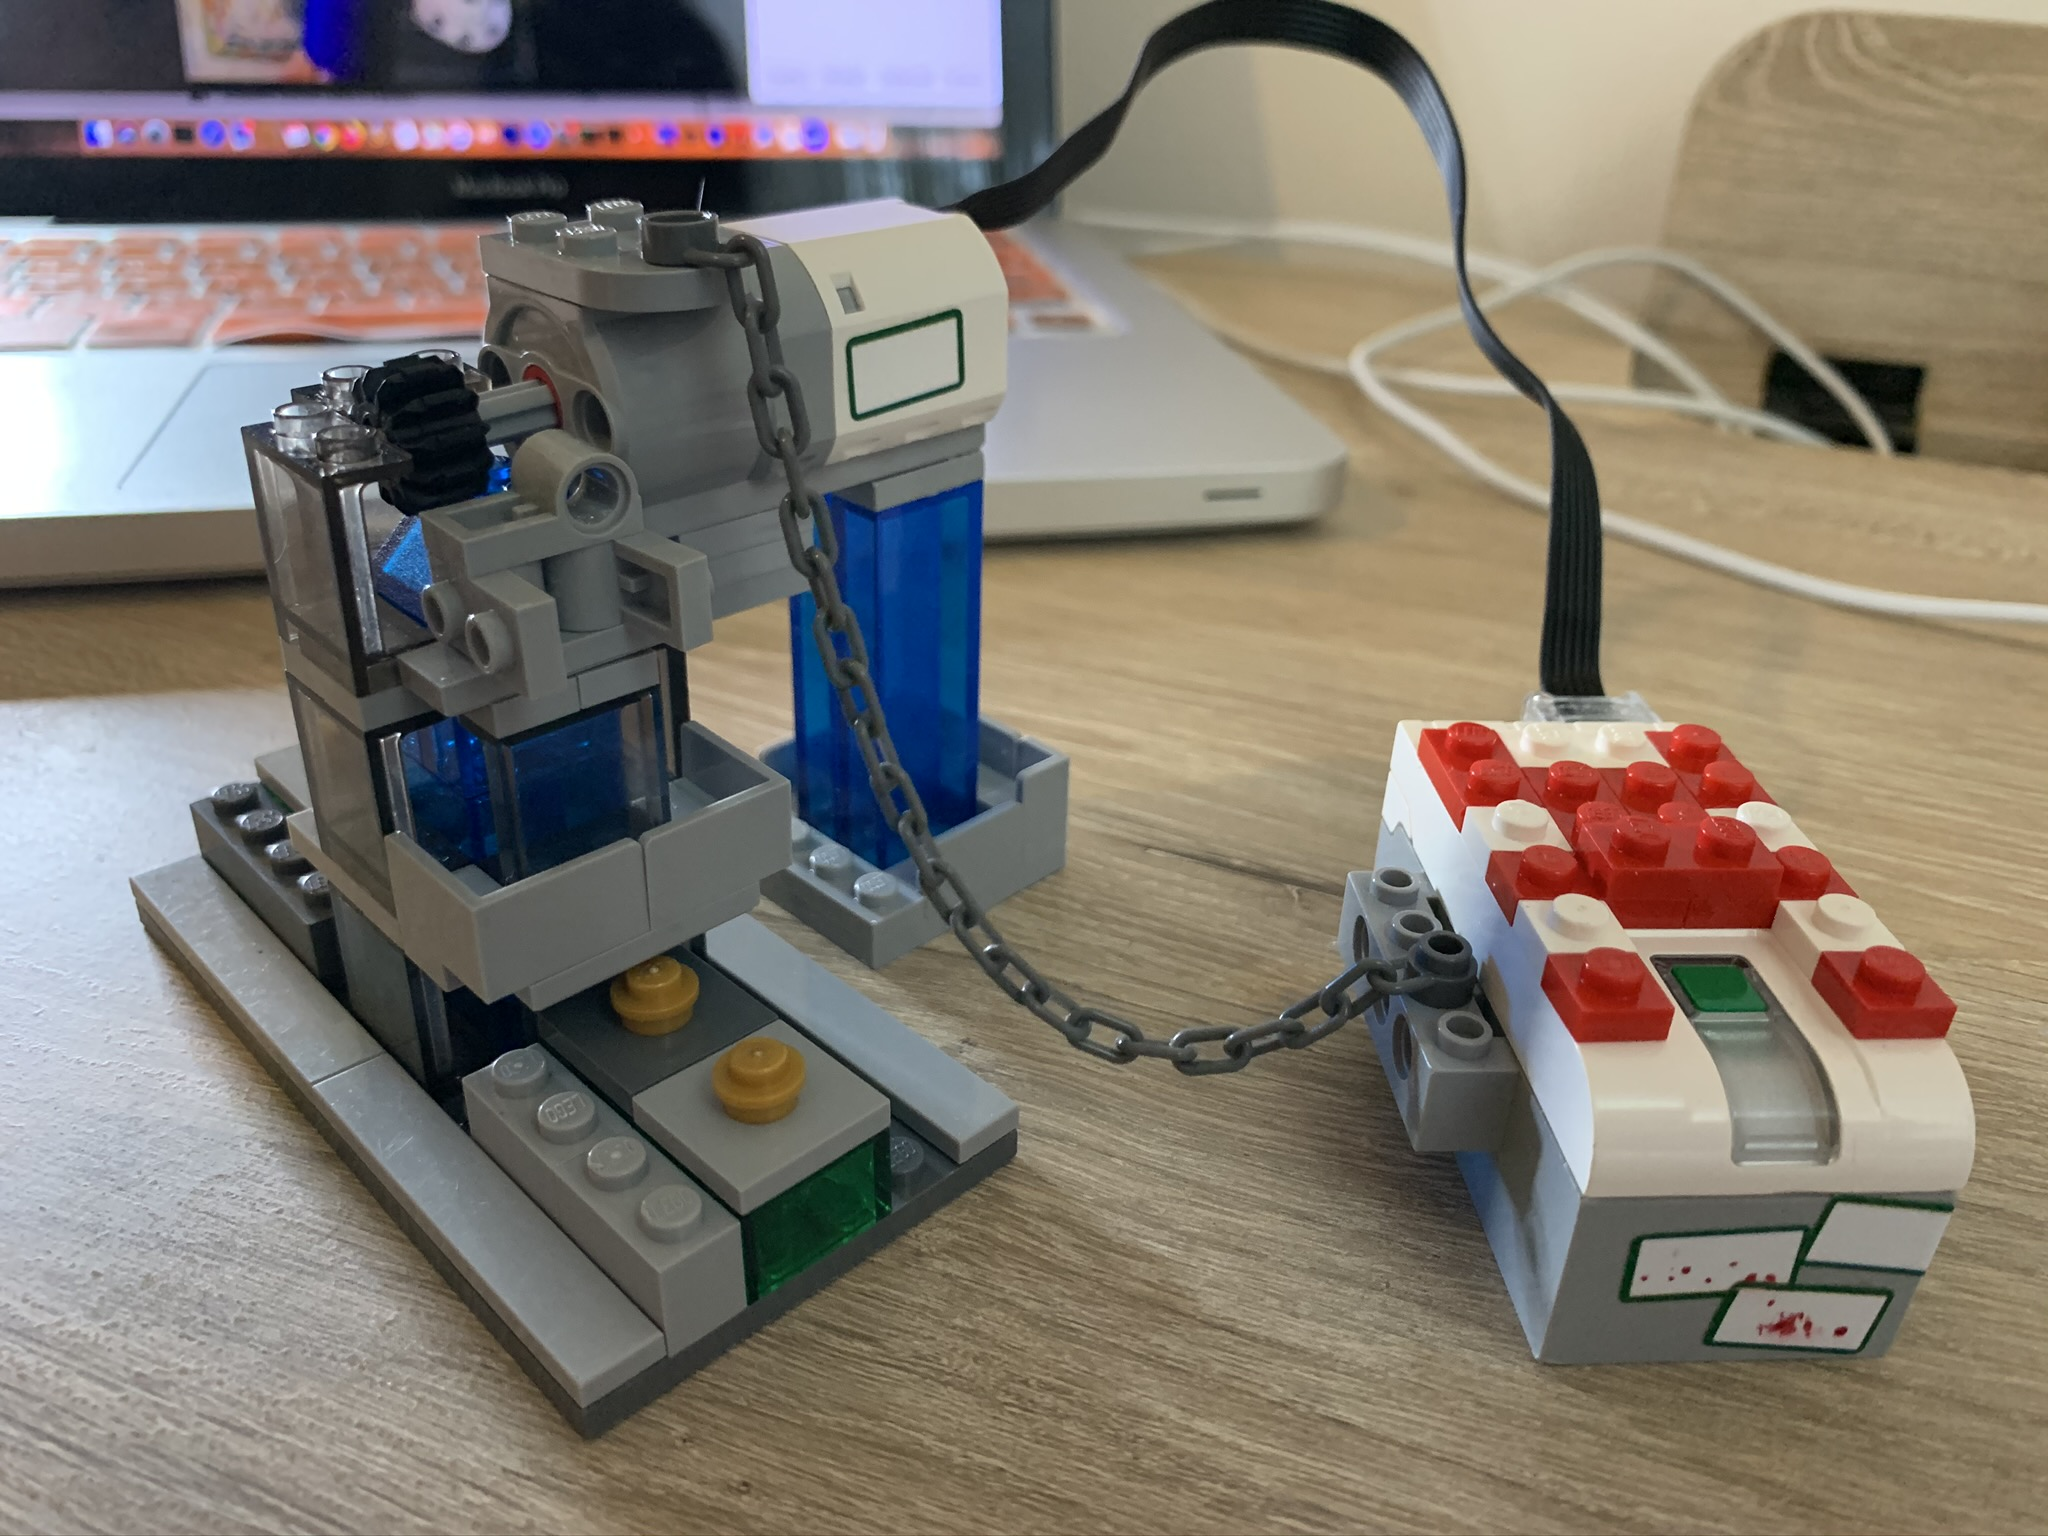 Mission Moon, First LEGO League